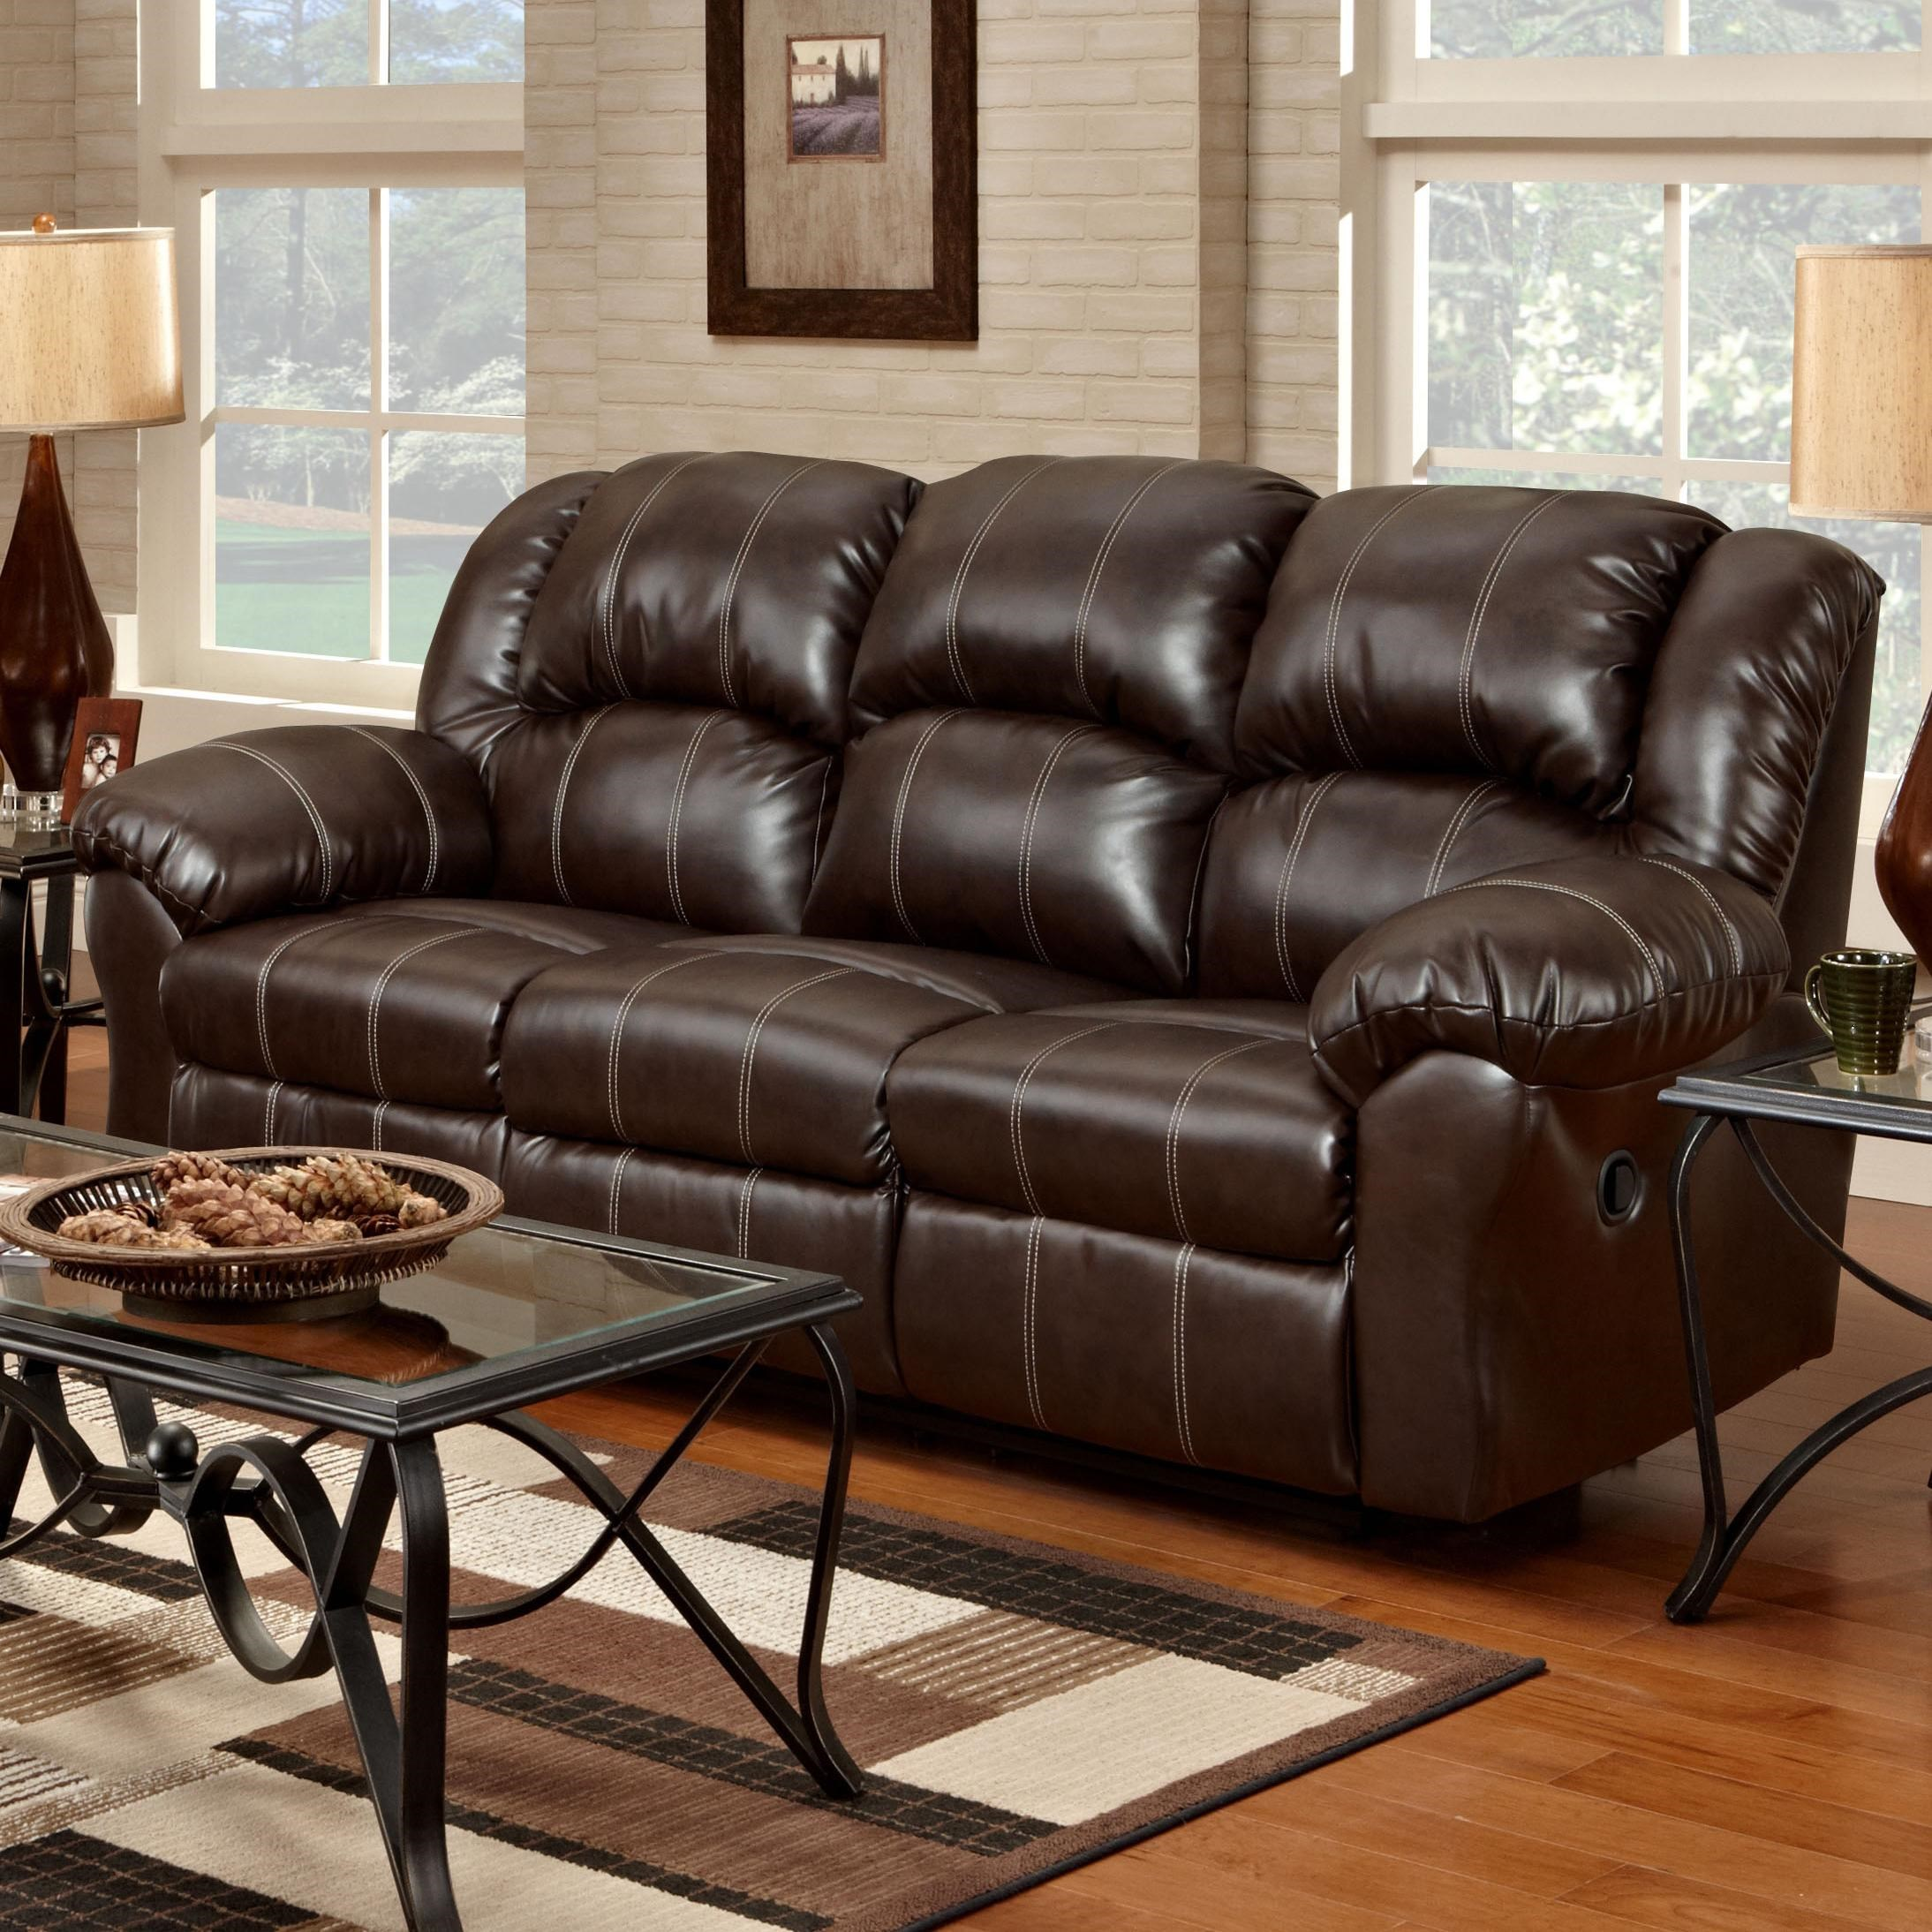 Exceptionnel Affordable Furniture 1000 Reclining Sofa With Pub Back U0026 Saddle Stitching